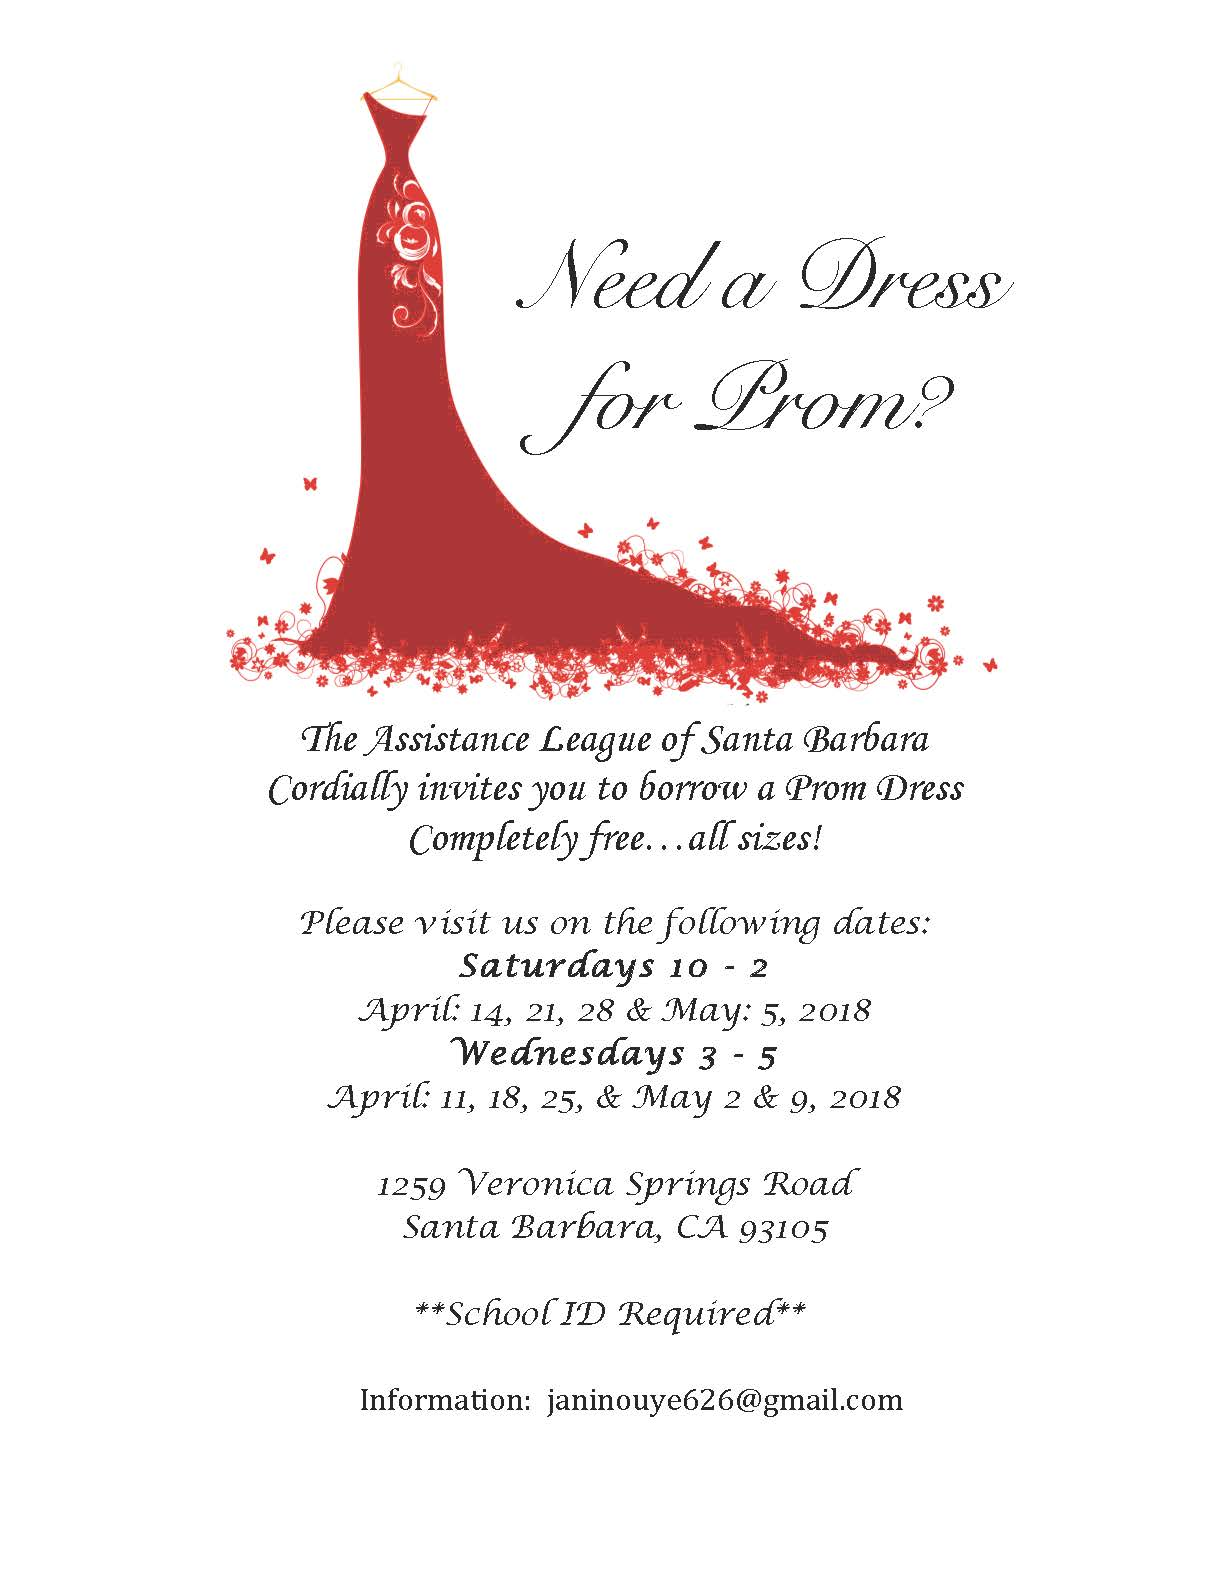 Pioneer Valley High School: Latest News - Need a Dress for Prom?